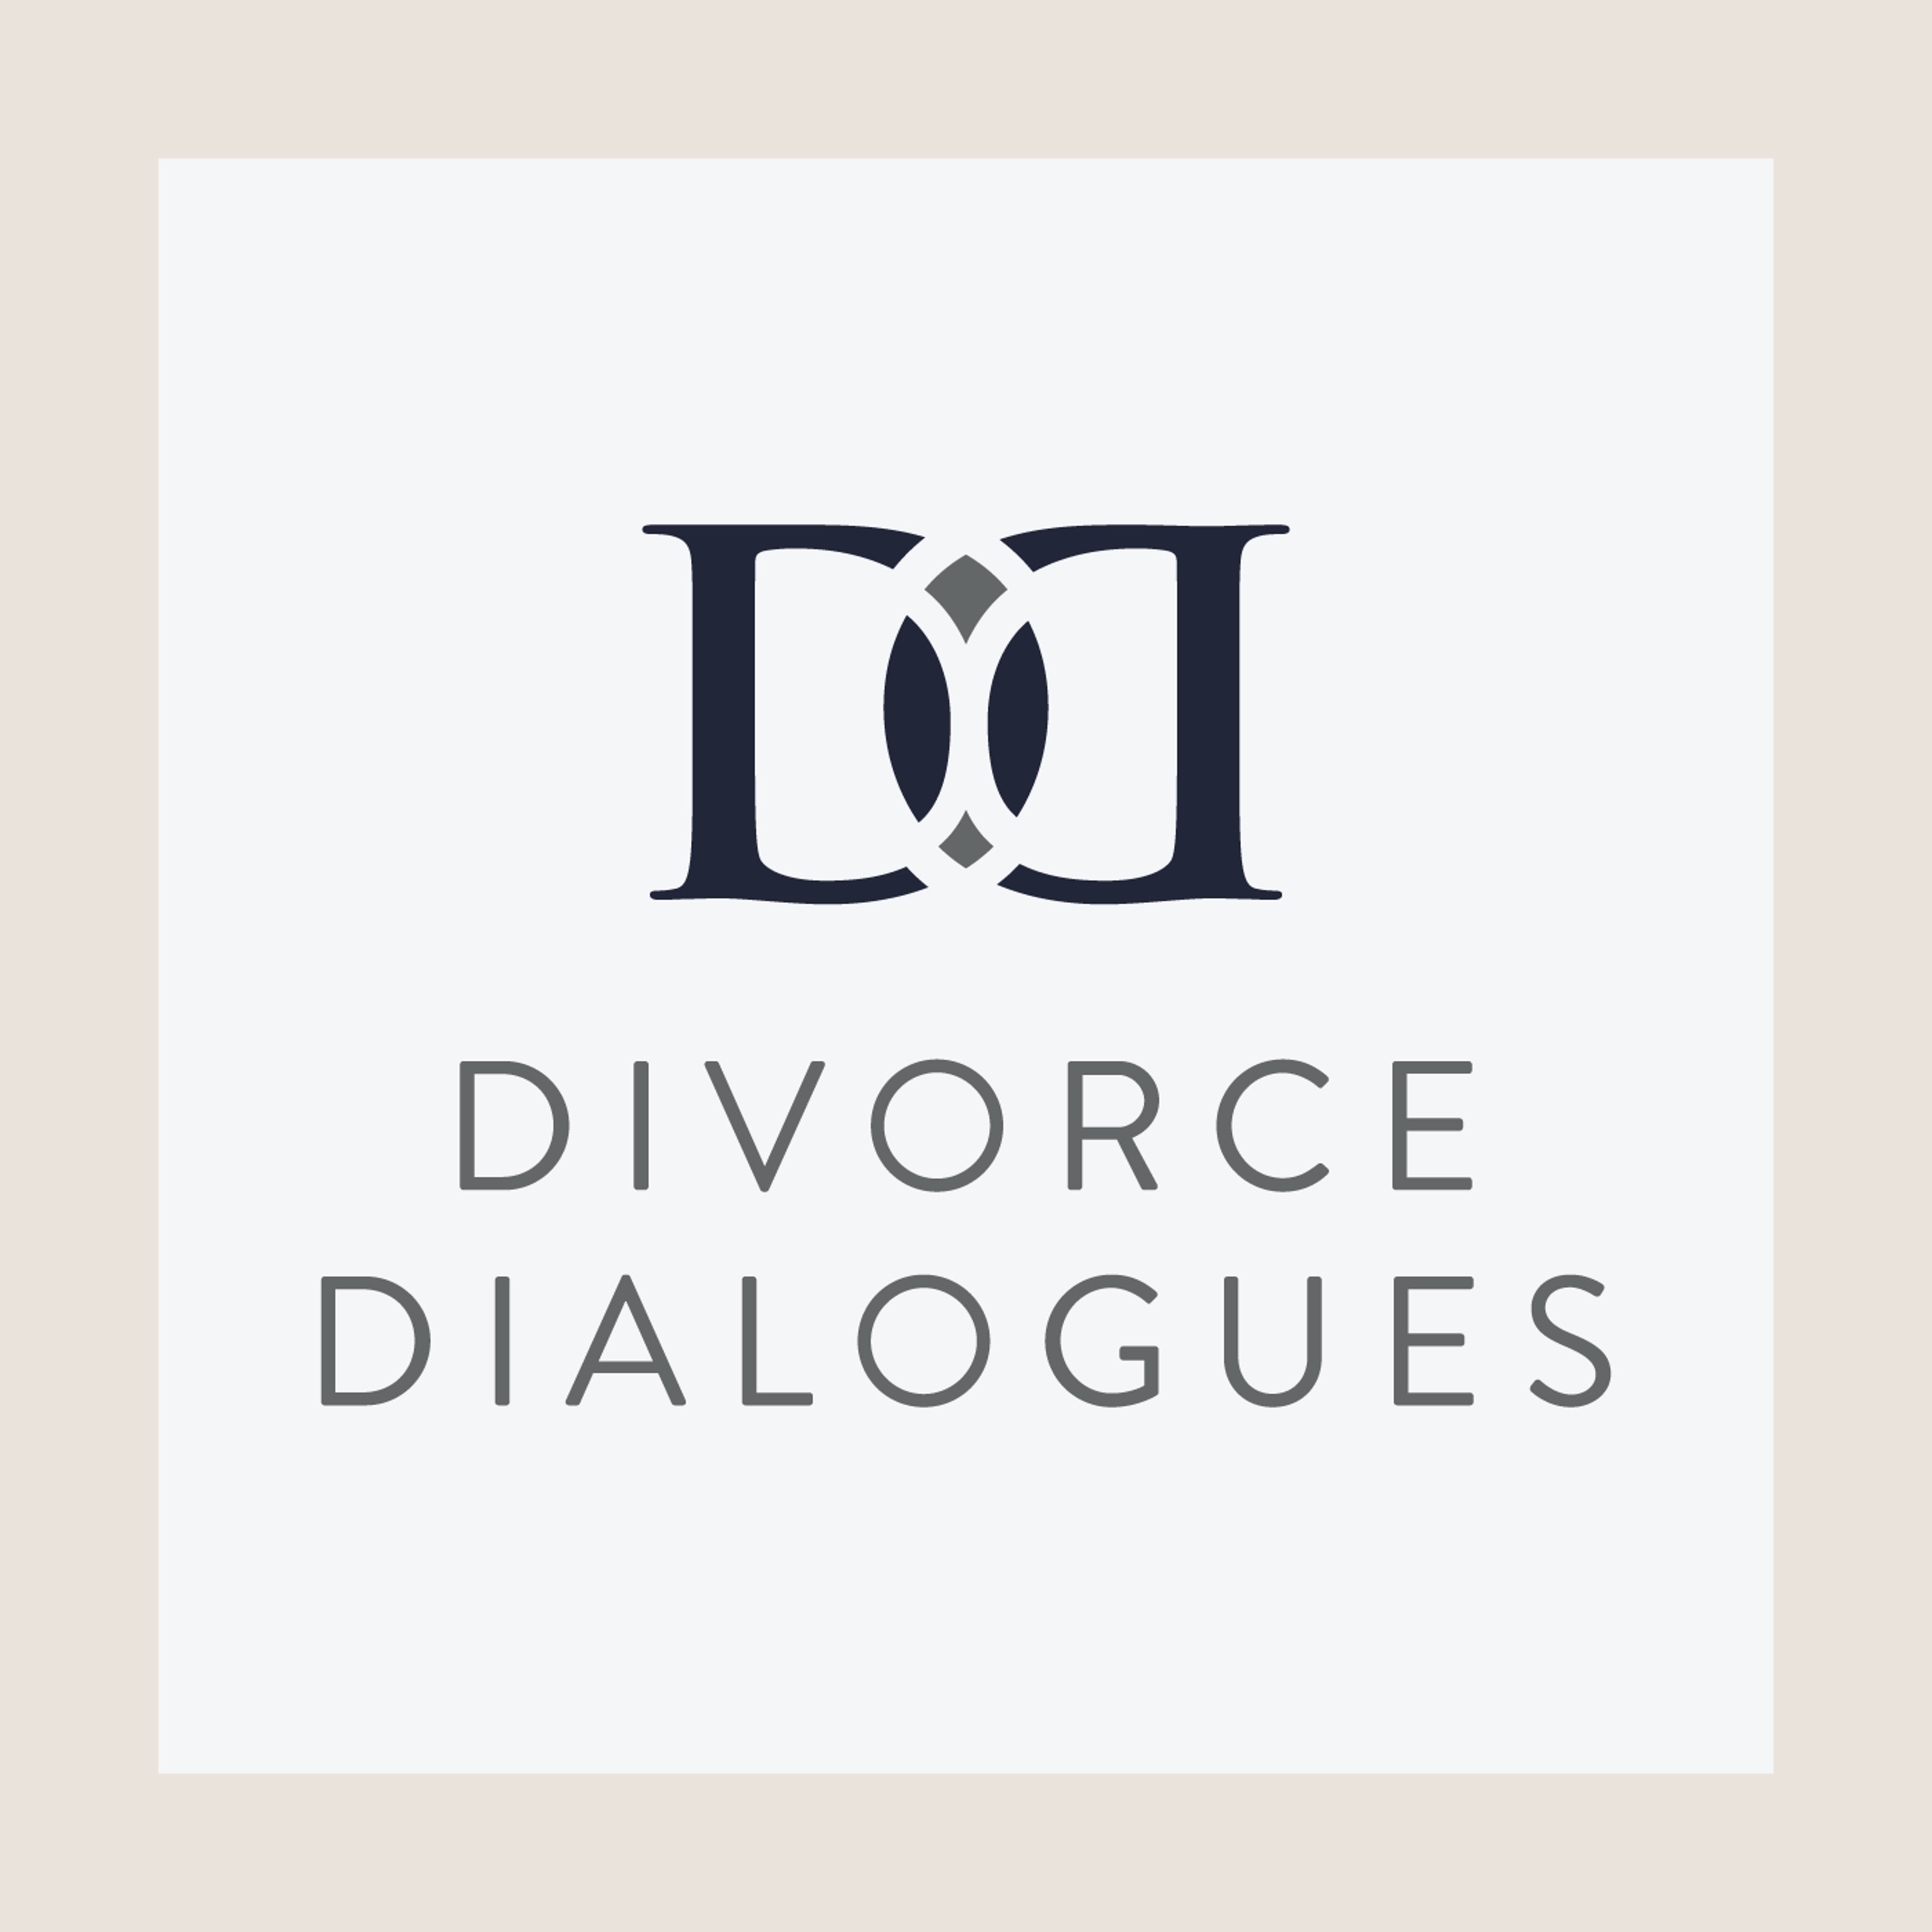 Divorce Dialogues - Evolving Laws Around Companion Animals and Divorce with David Favre